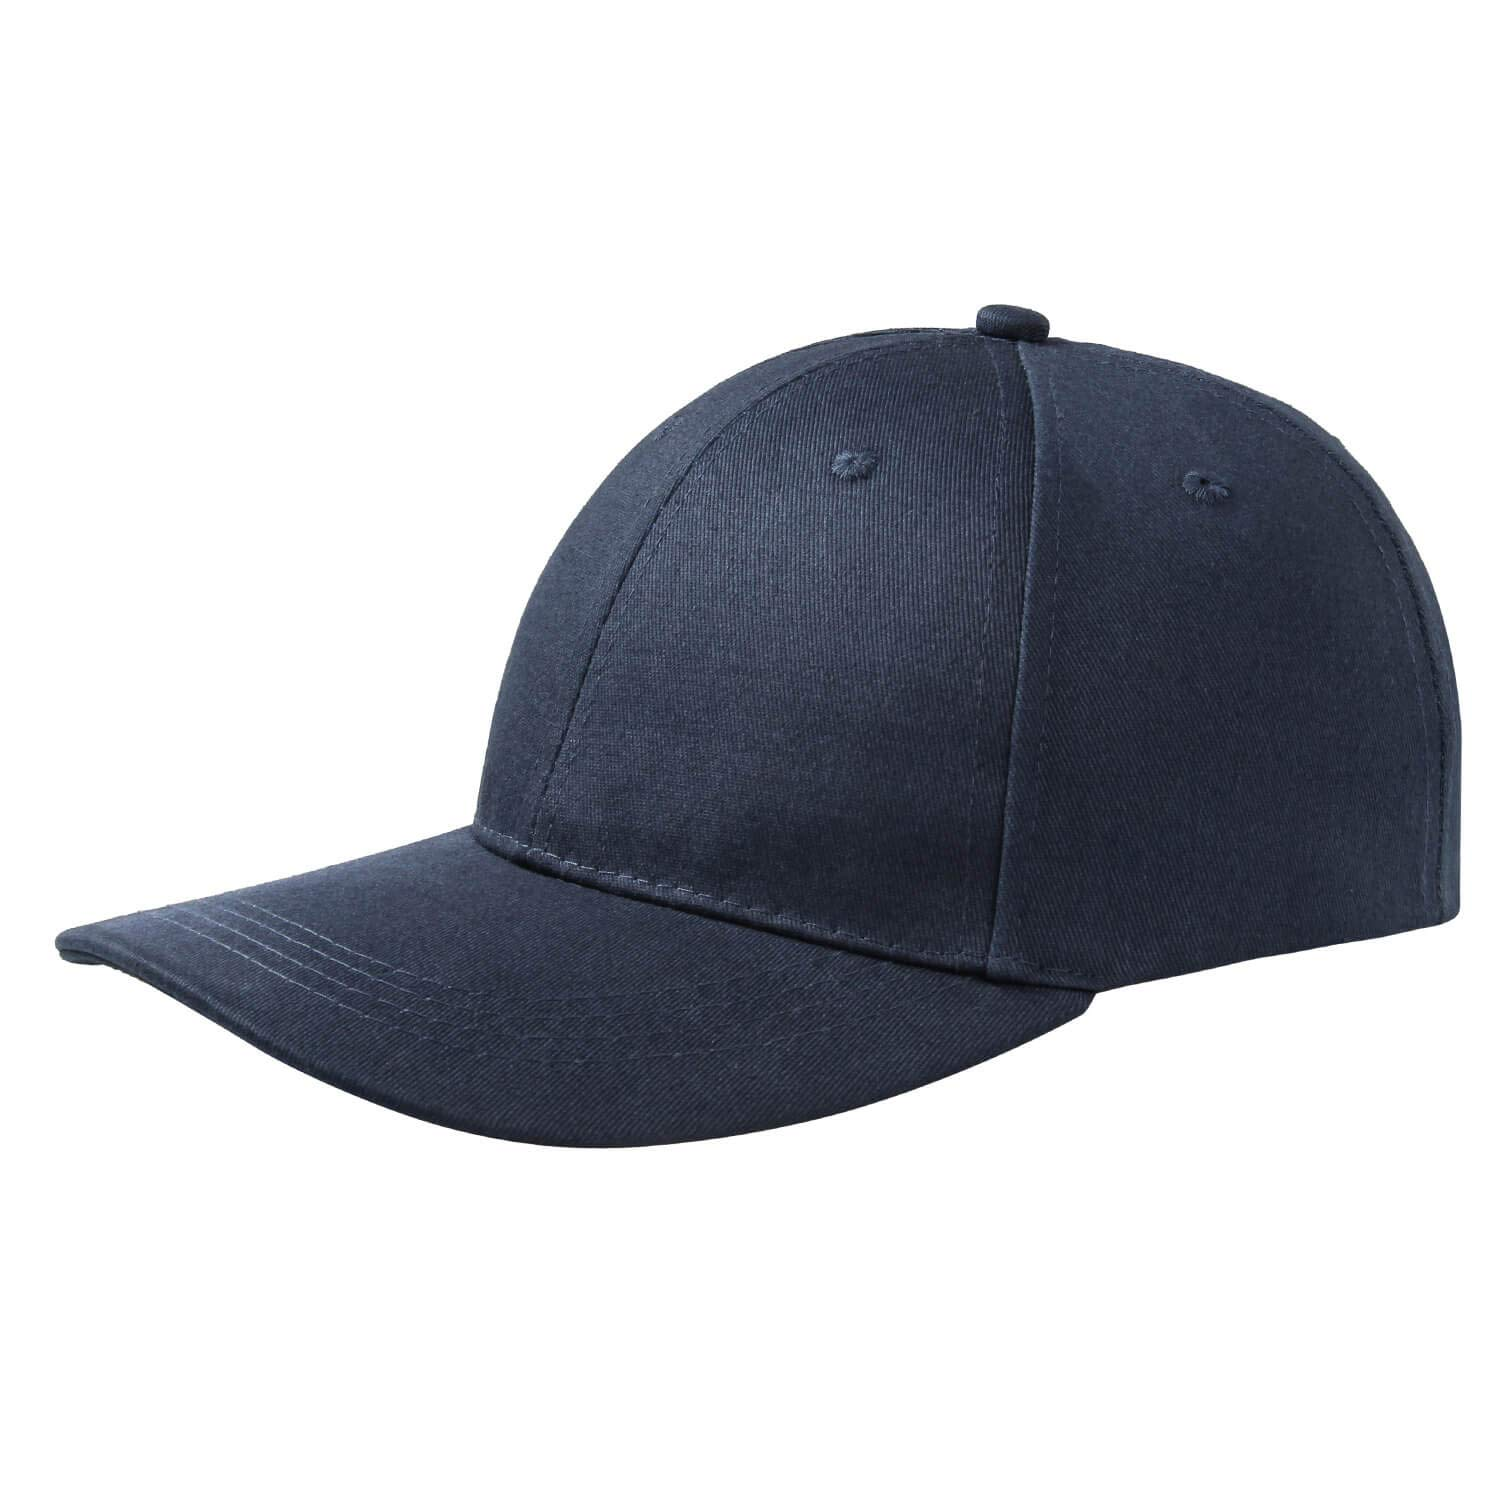 OZERO Baseball Cap Classic Polo Ball Hat Adjustable Fit for Men and Women